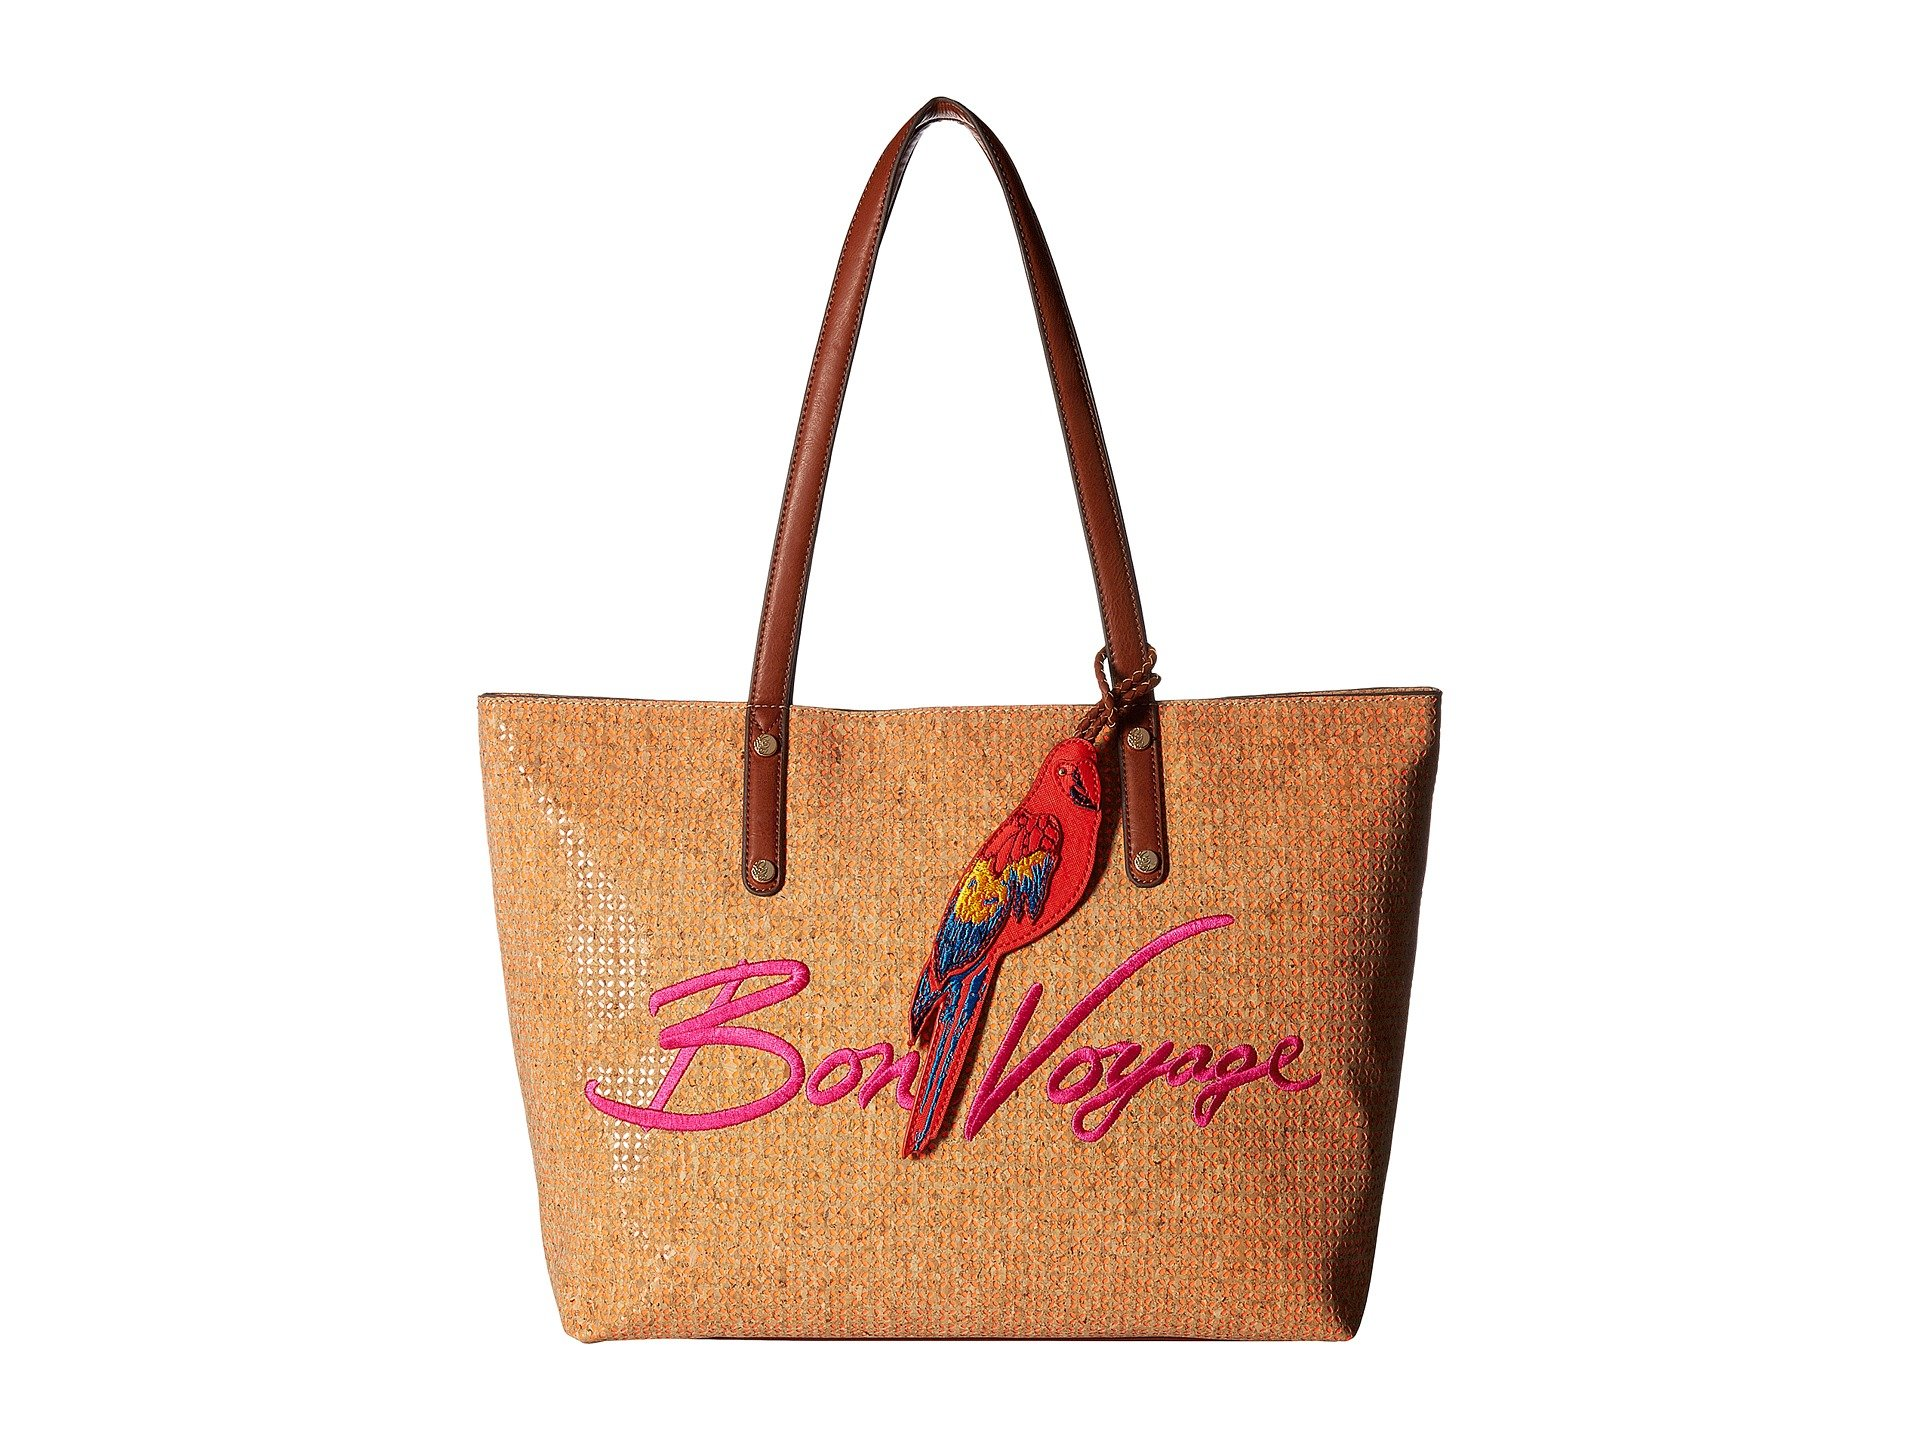 Parrot Bay Tote